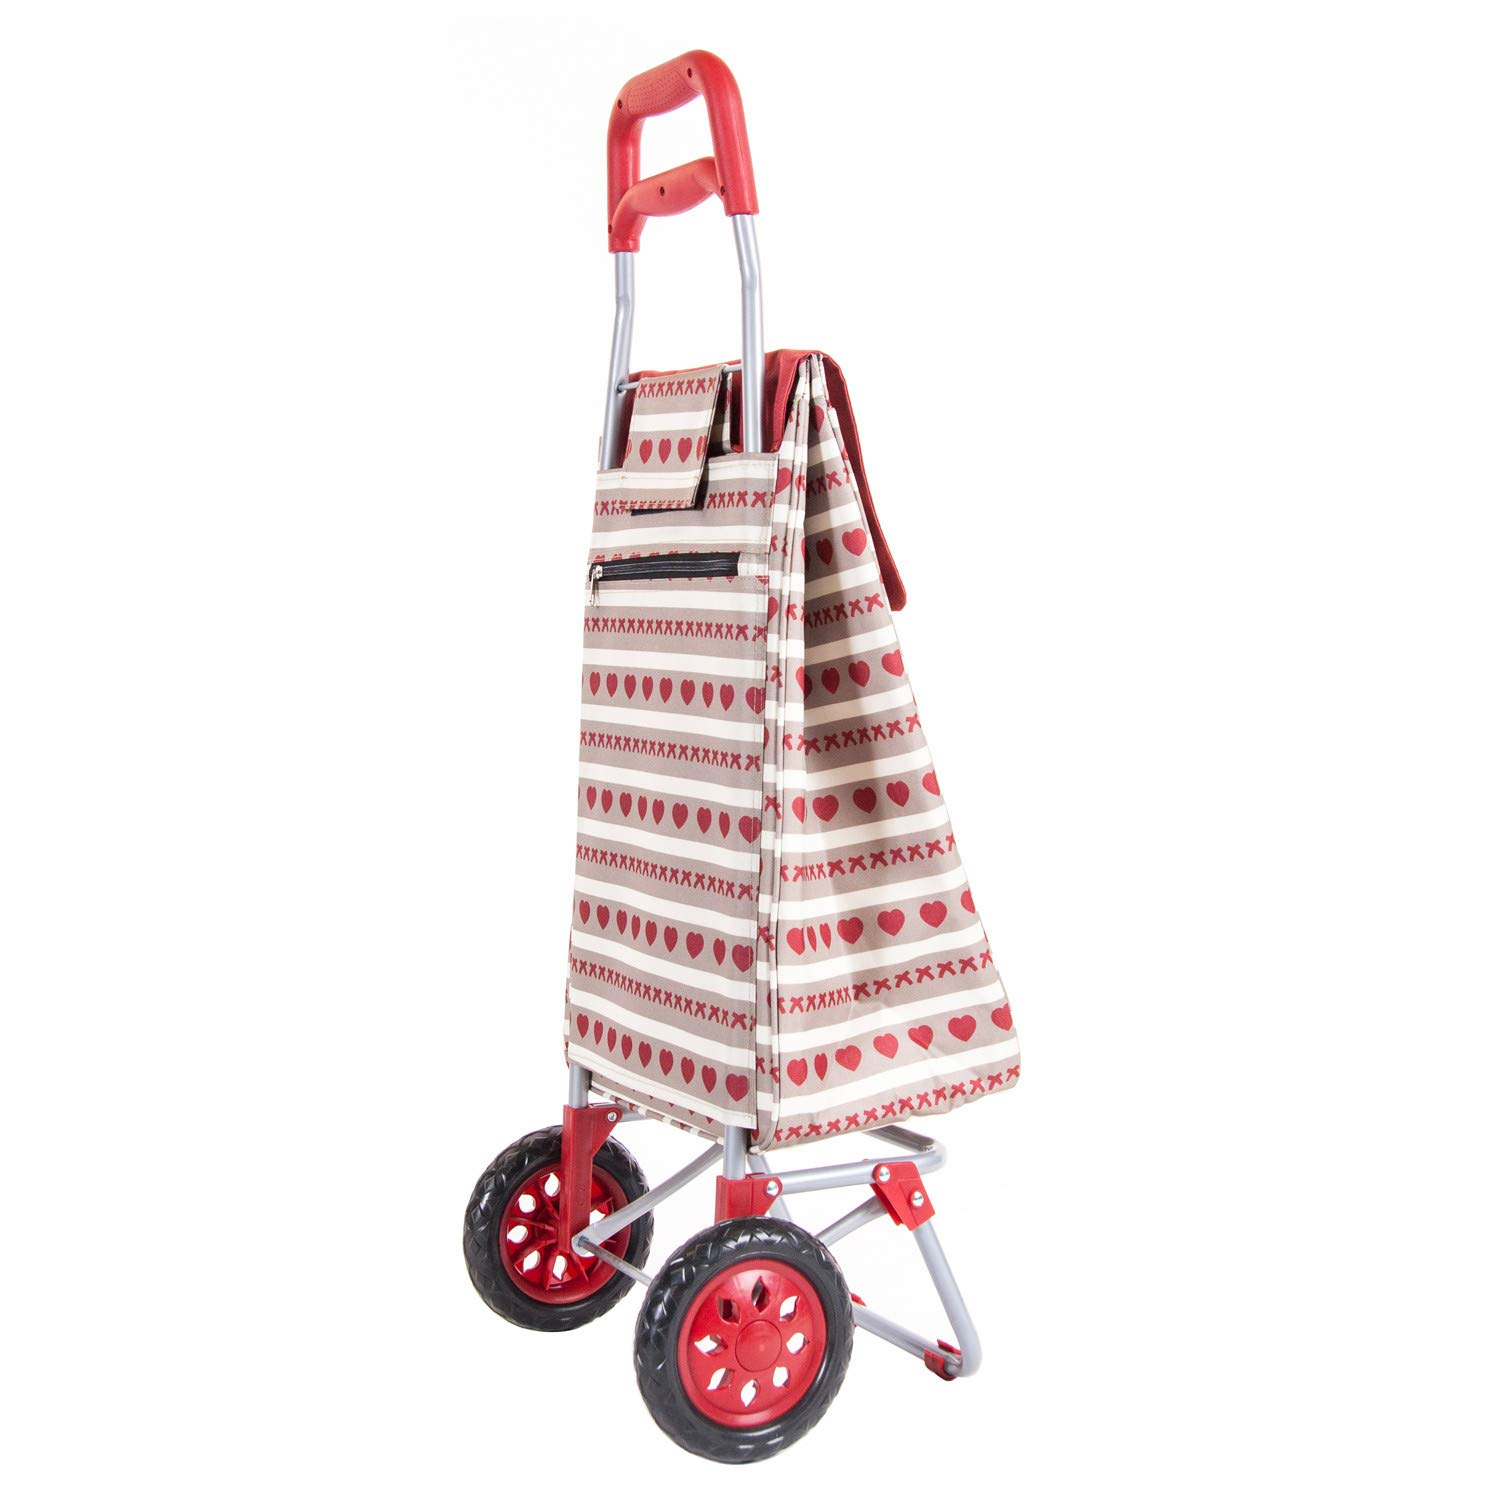 Sabichi 187611 Home Bistro 2 Wheel Shopping Trolley with Thermal Insulation Liner 40ltr Capacity 95 x 36.5 x 30cm